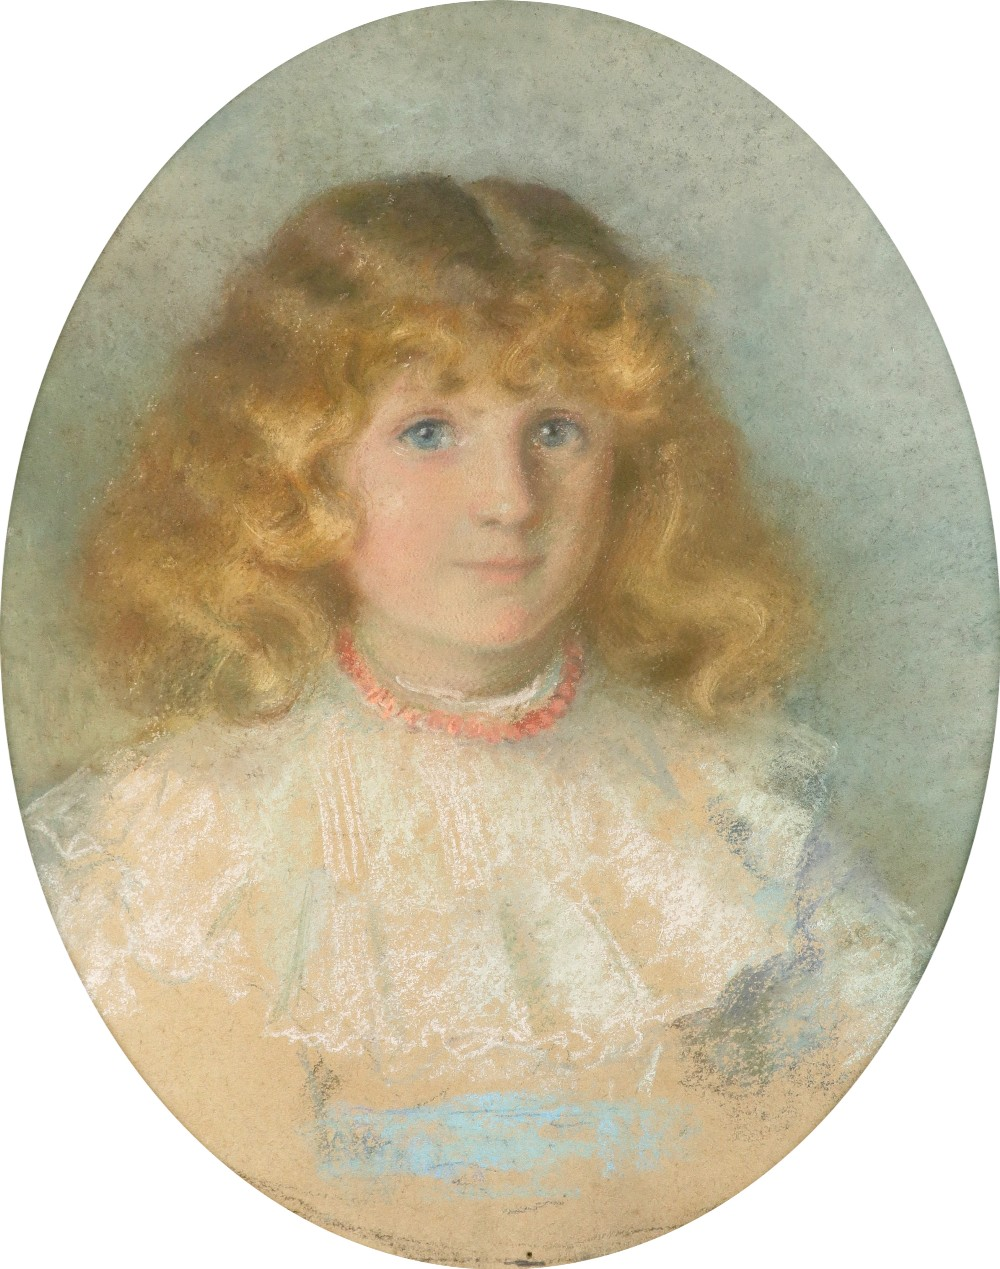 British School 1900 Portrait of a boy in a sailor suit; Portrait of a girl in a blue dress with lace - Image 4 of 6